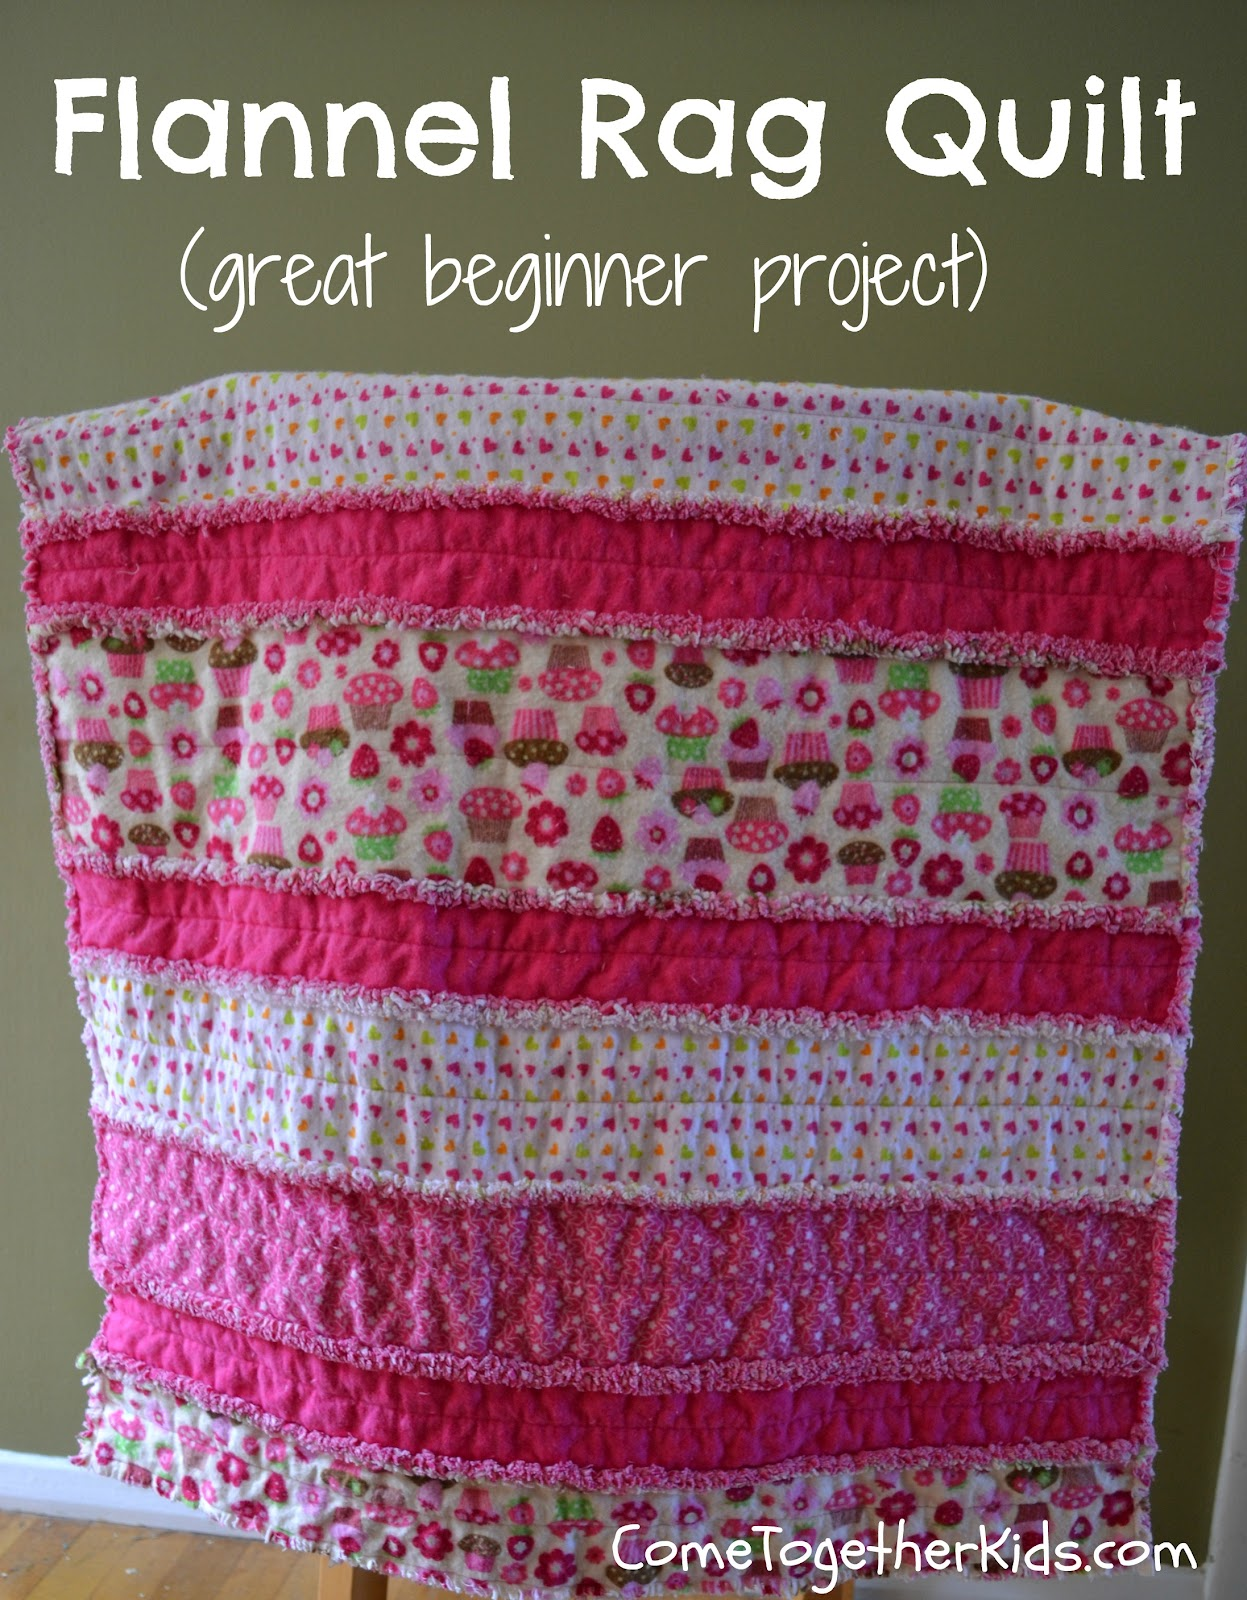 Come Together Kids: Flannel Rag Quilt : rag quilt with cotton fabric - Adamdwight.com